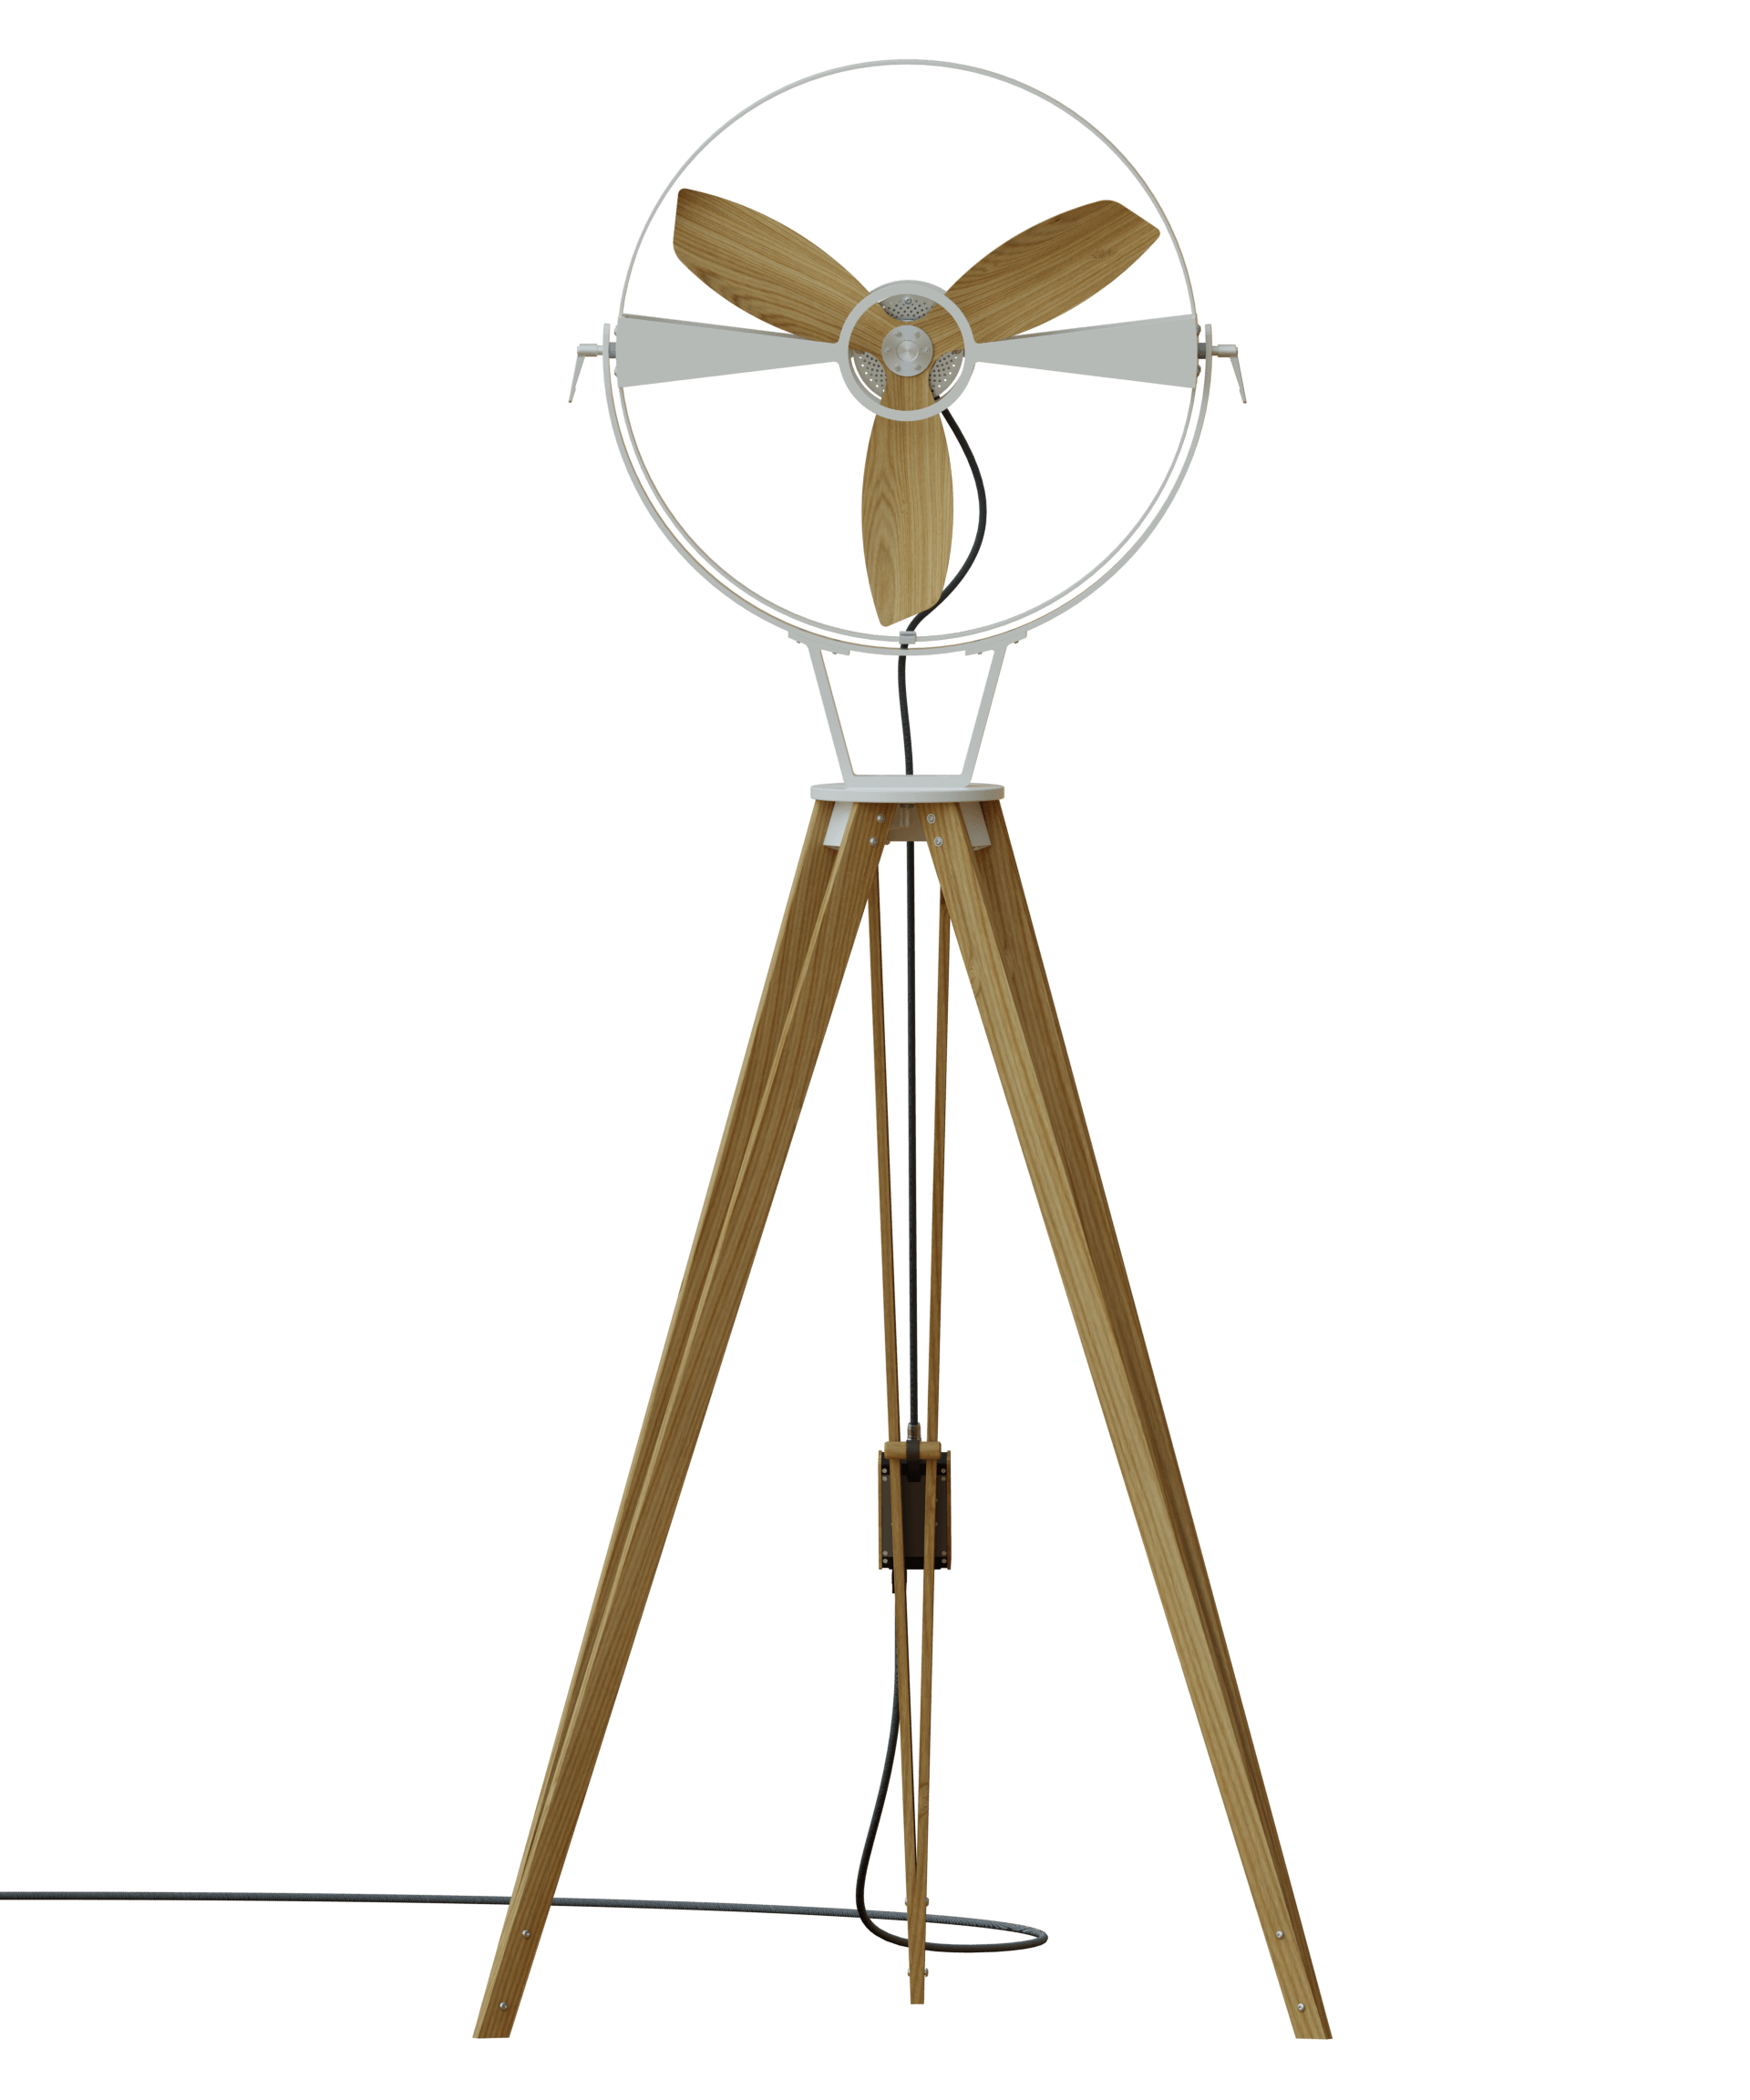 AURA White - TTATO´s wooden tripod fan in front view